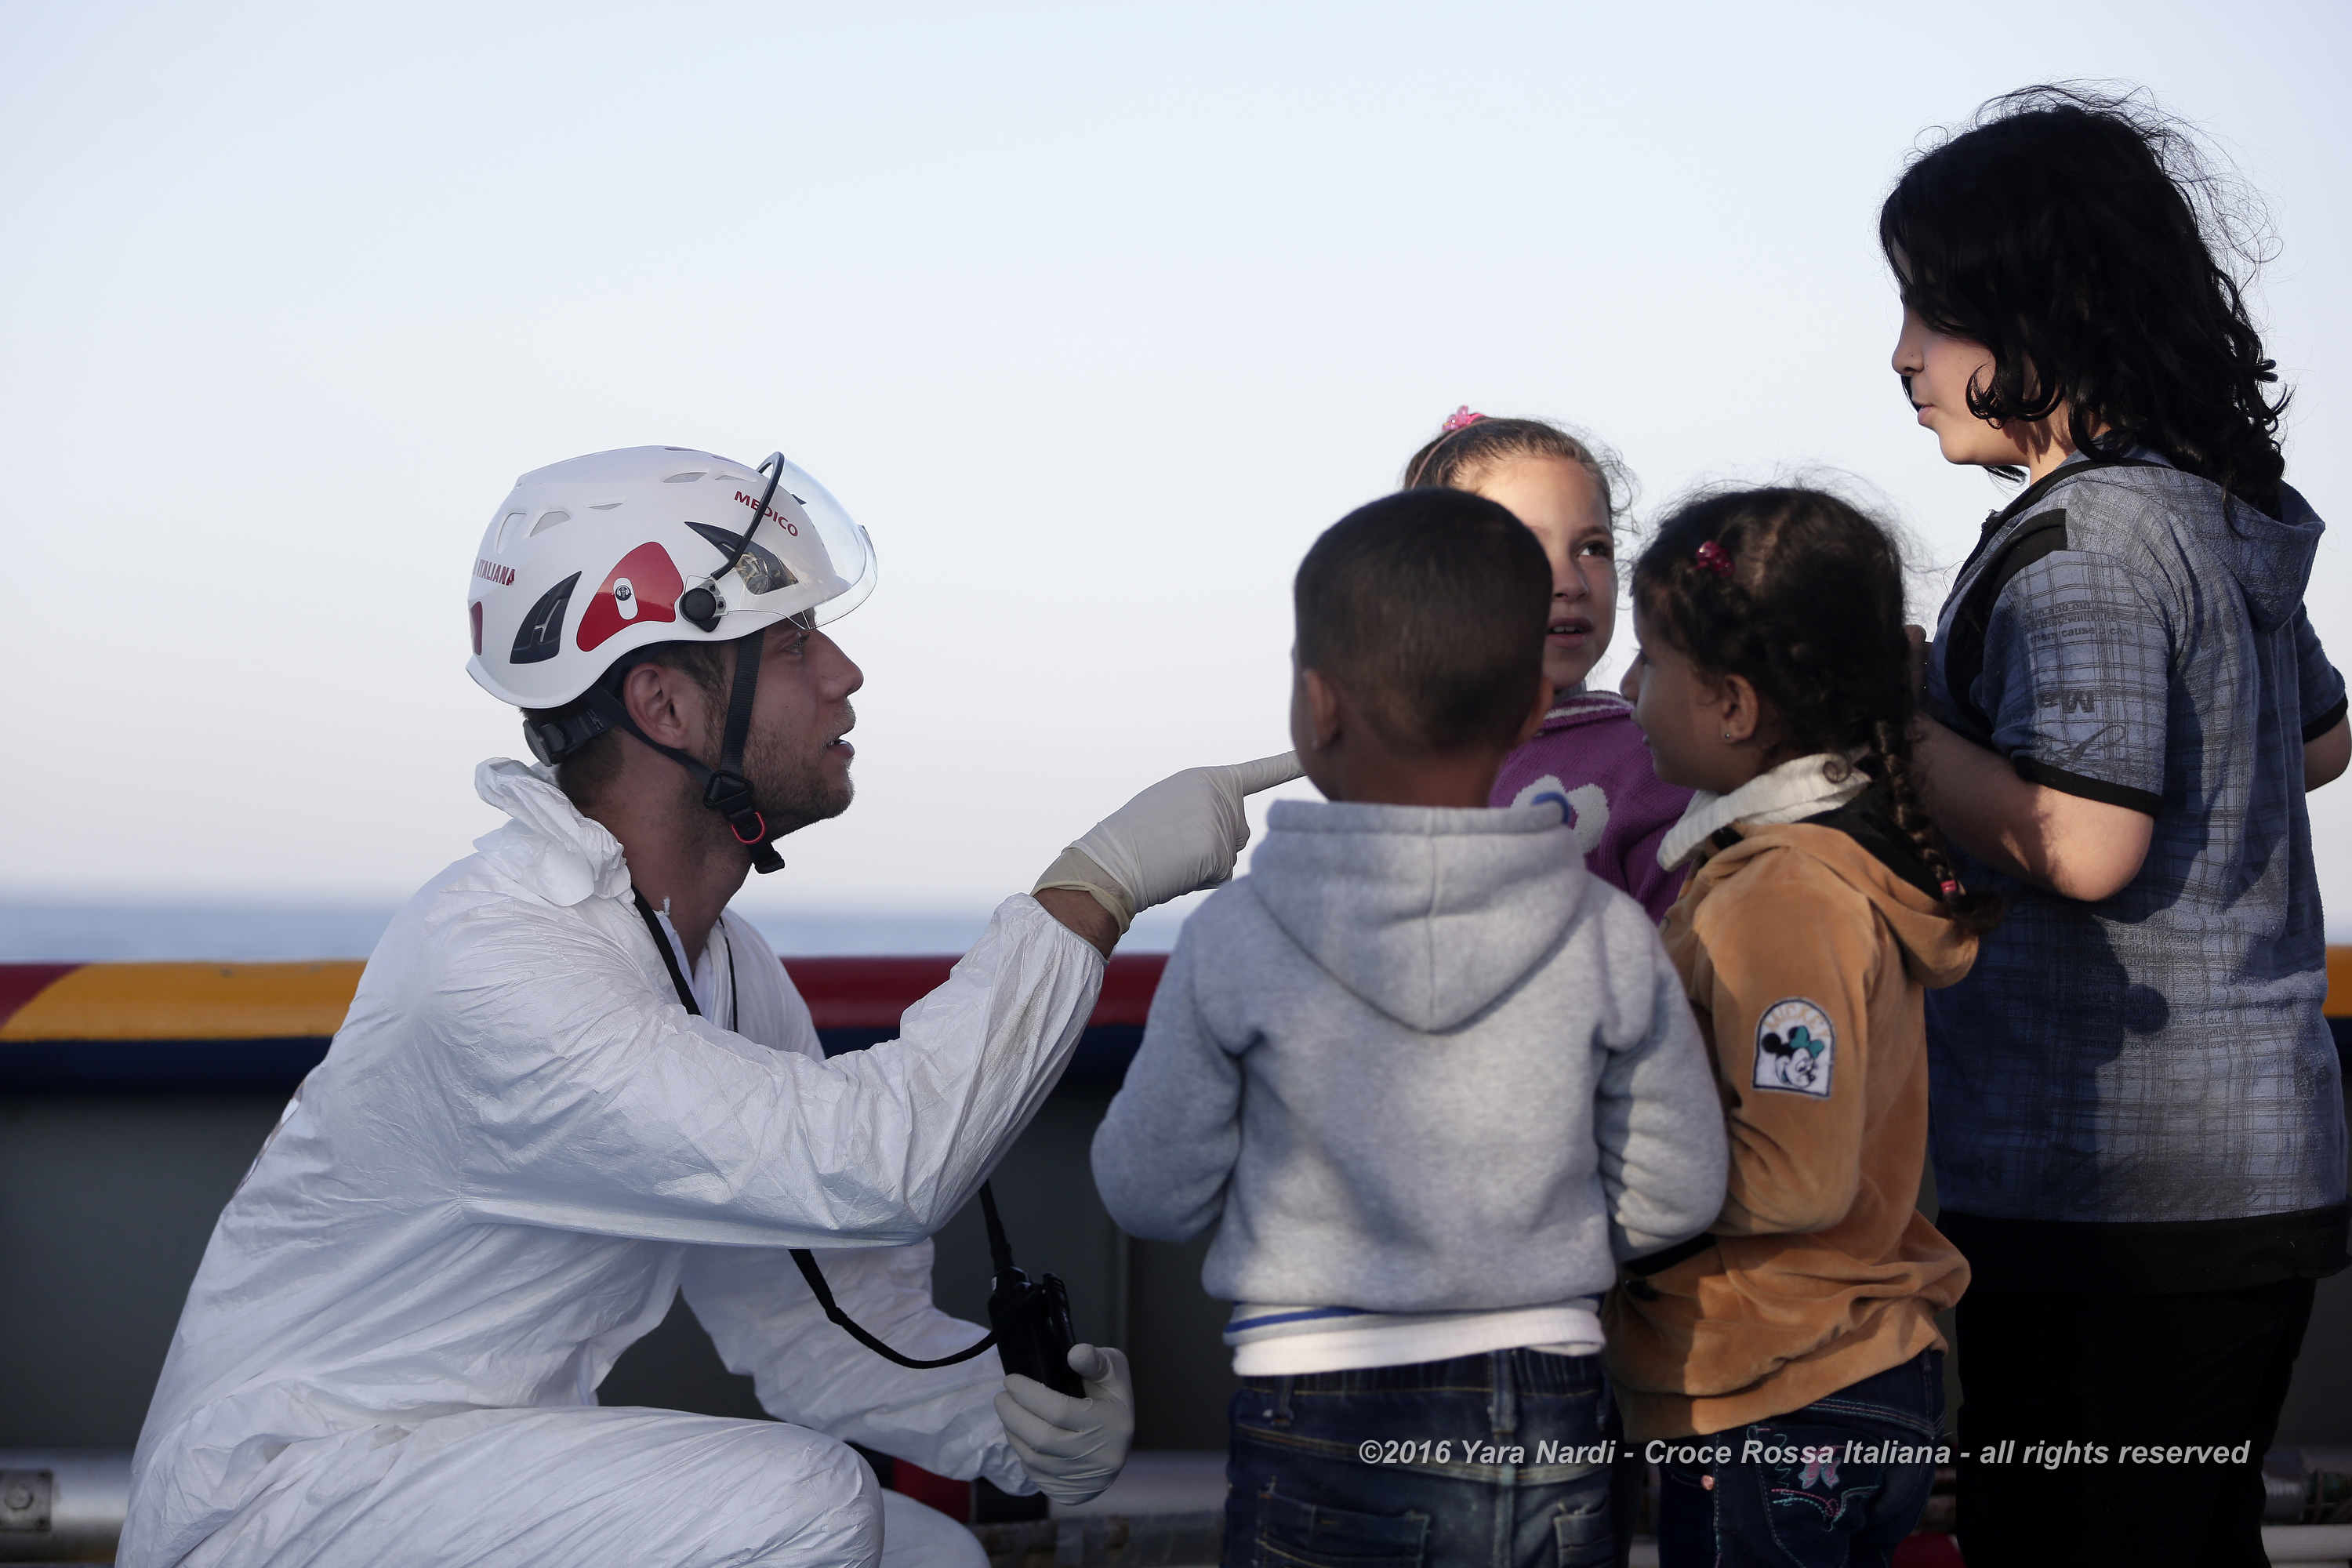 A day in the life of a volunteer in the Mediterranean Sea